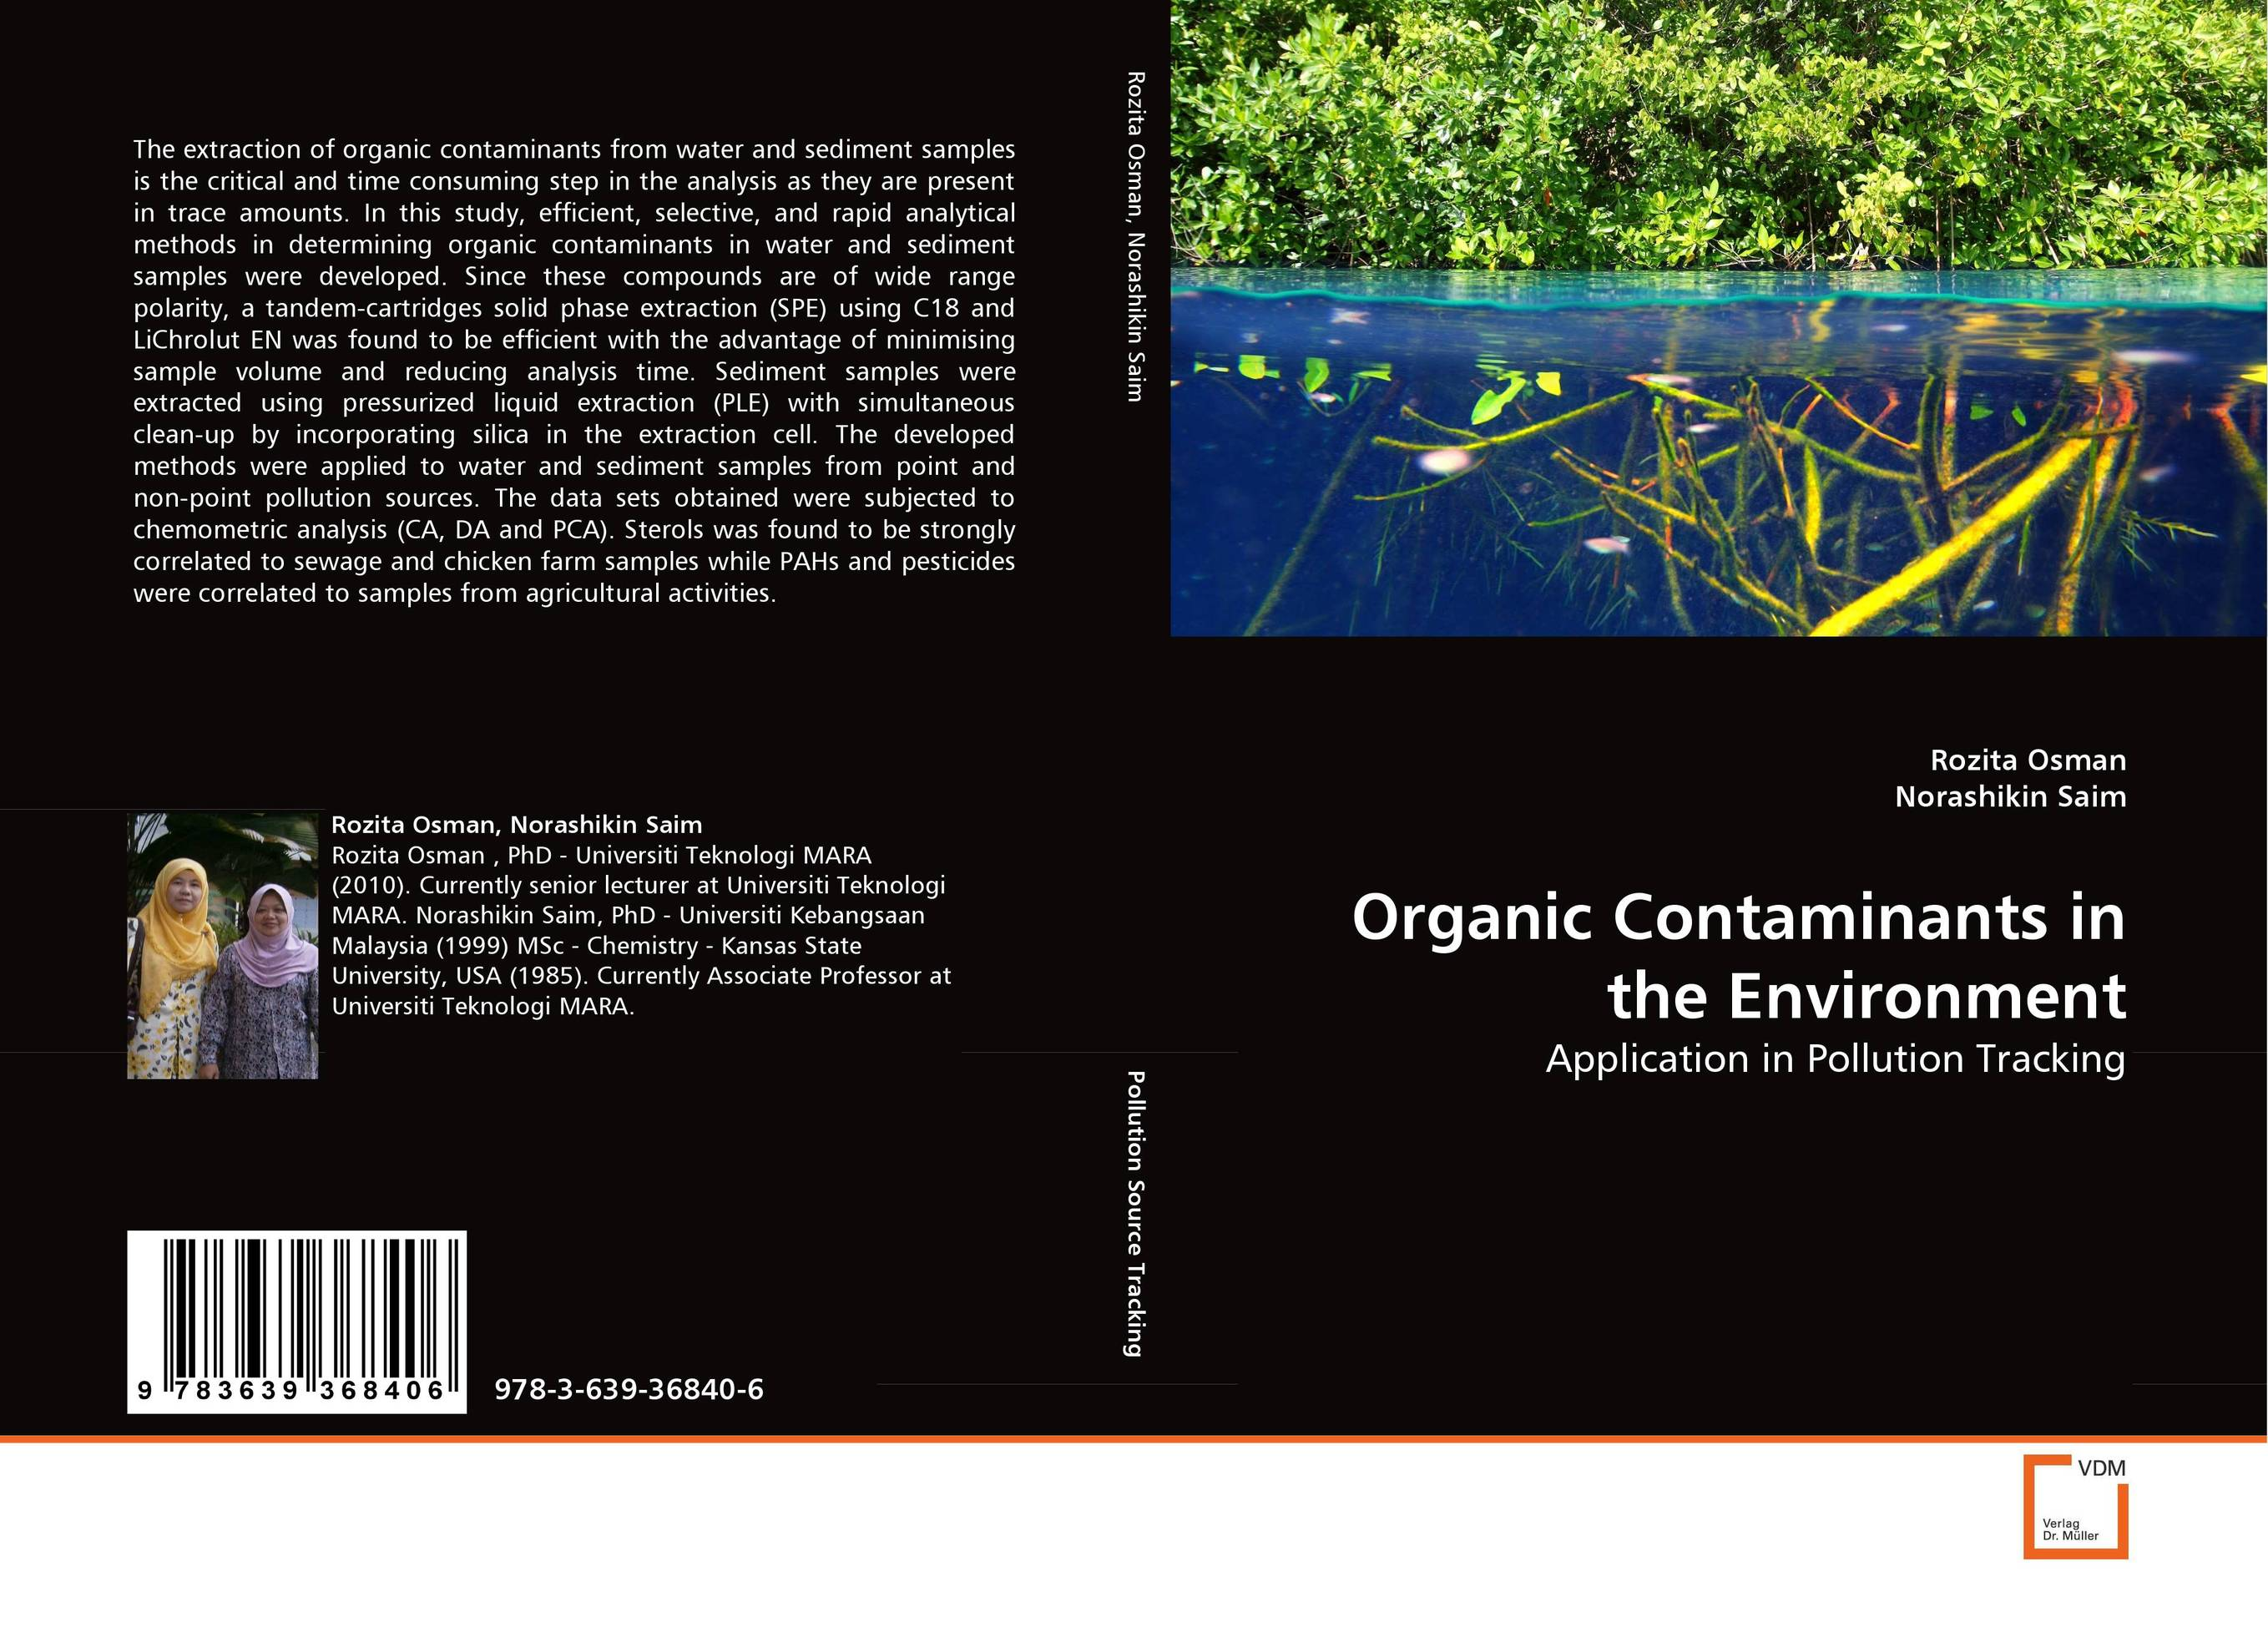 Organic Contaminants in the Environment found in brooklyn